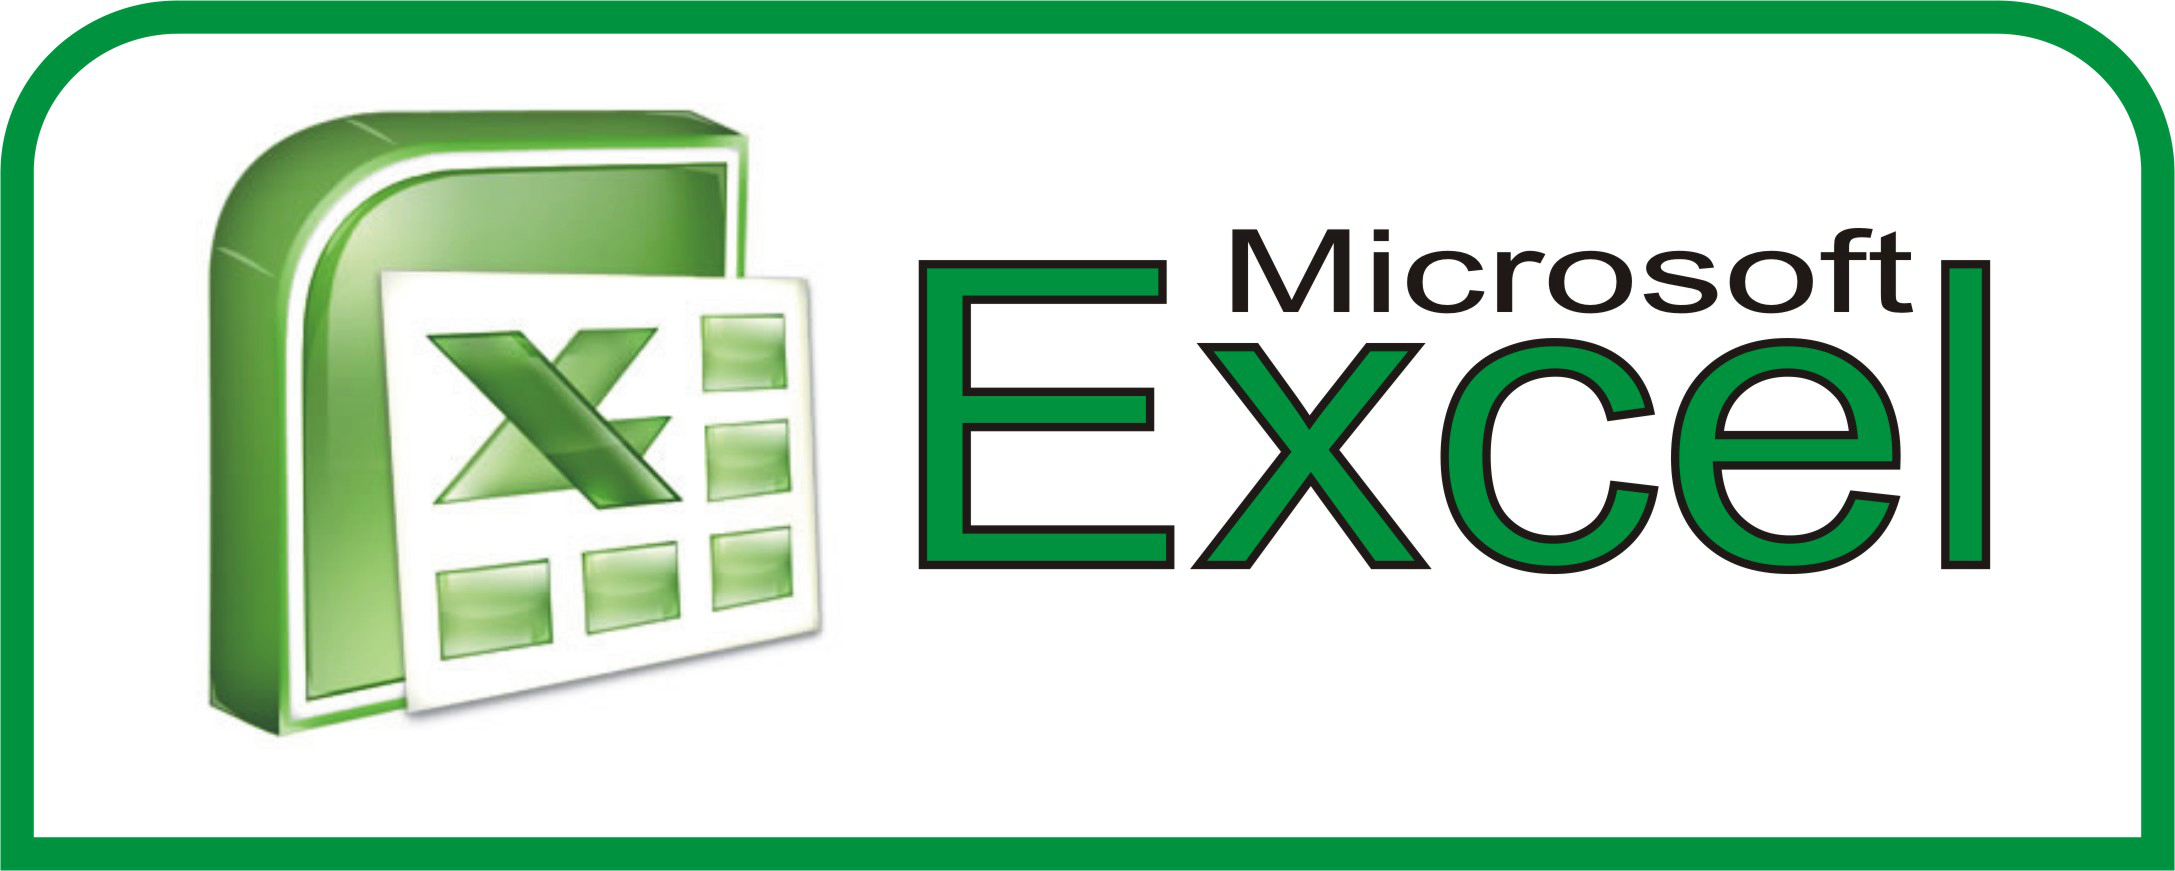 Ediblewildsus  Remarkable  Excel Shortcuts You Probably Didnt Know About  Techdissected With Marvelous Printable Excel Shortcuts Besides Microsoft Excel Graph Furthermore Activex Control Excel With Breathtaking Online Excel Certification Also Excel Budget Template Mac In Addition Copy Function In Excel And How To Recover Lost Excel Files As Well As Using Excel To Solve Equations Additionally What To Do With Excel From Techdissectedcom With Ediblewildsus  Marvelous  Excel Shortcuts You Probably Didnt Know About  Techdissected With Breathtaking Printable Excel Shortcuts Besides Microsoft Excel Graph Furthermore Activex Control Excel And Remarkable Online Excel Certification Also Excel Budget Template Mac In Addition Copy Function In Excel From Techdissectedcom